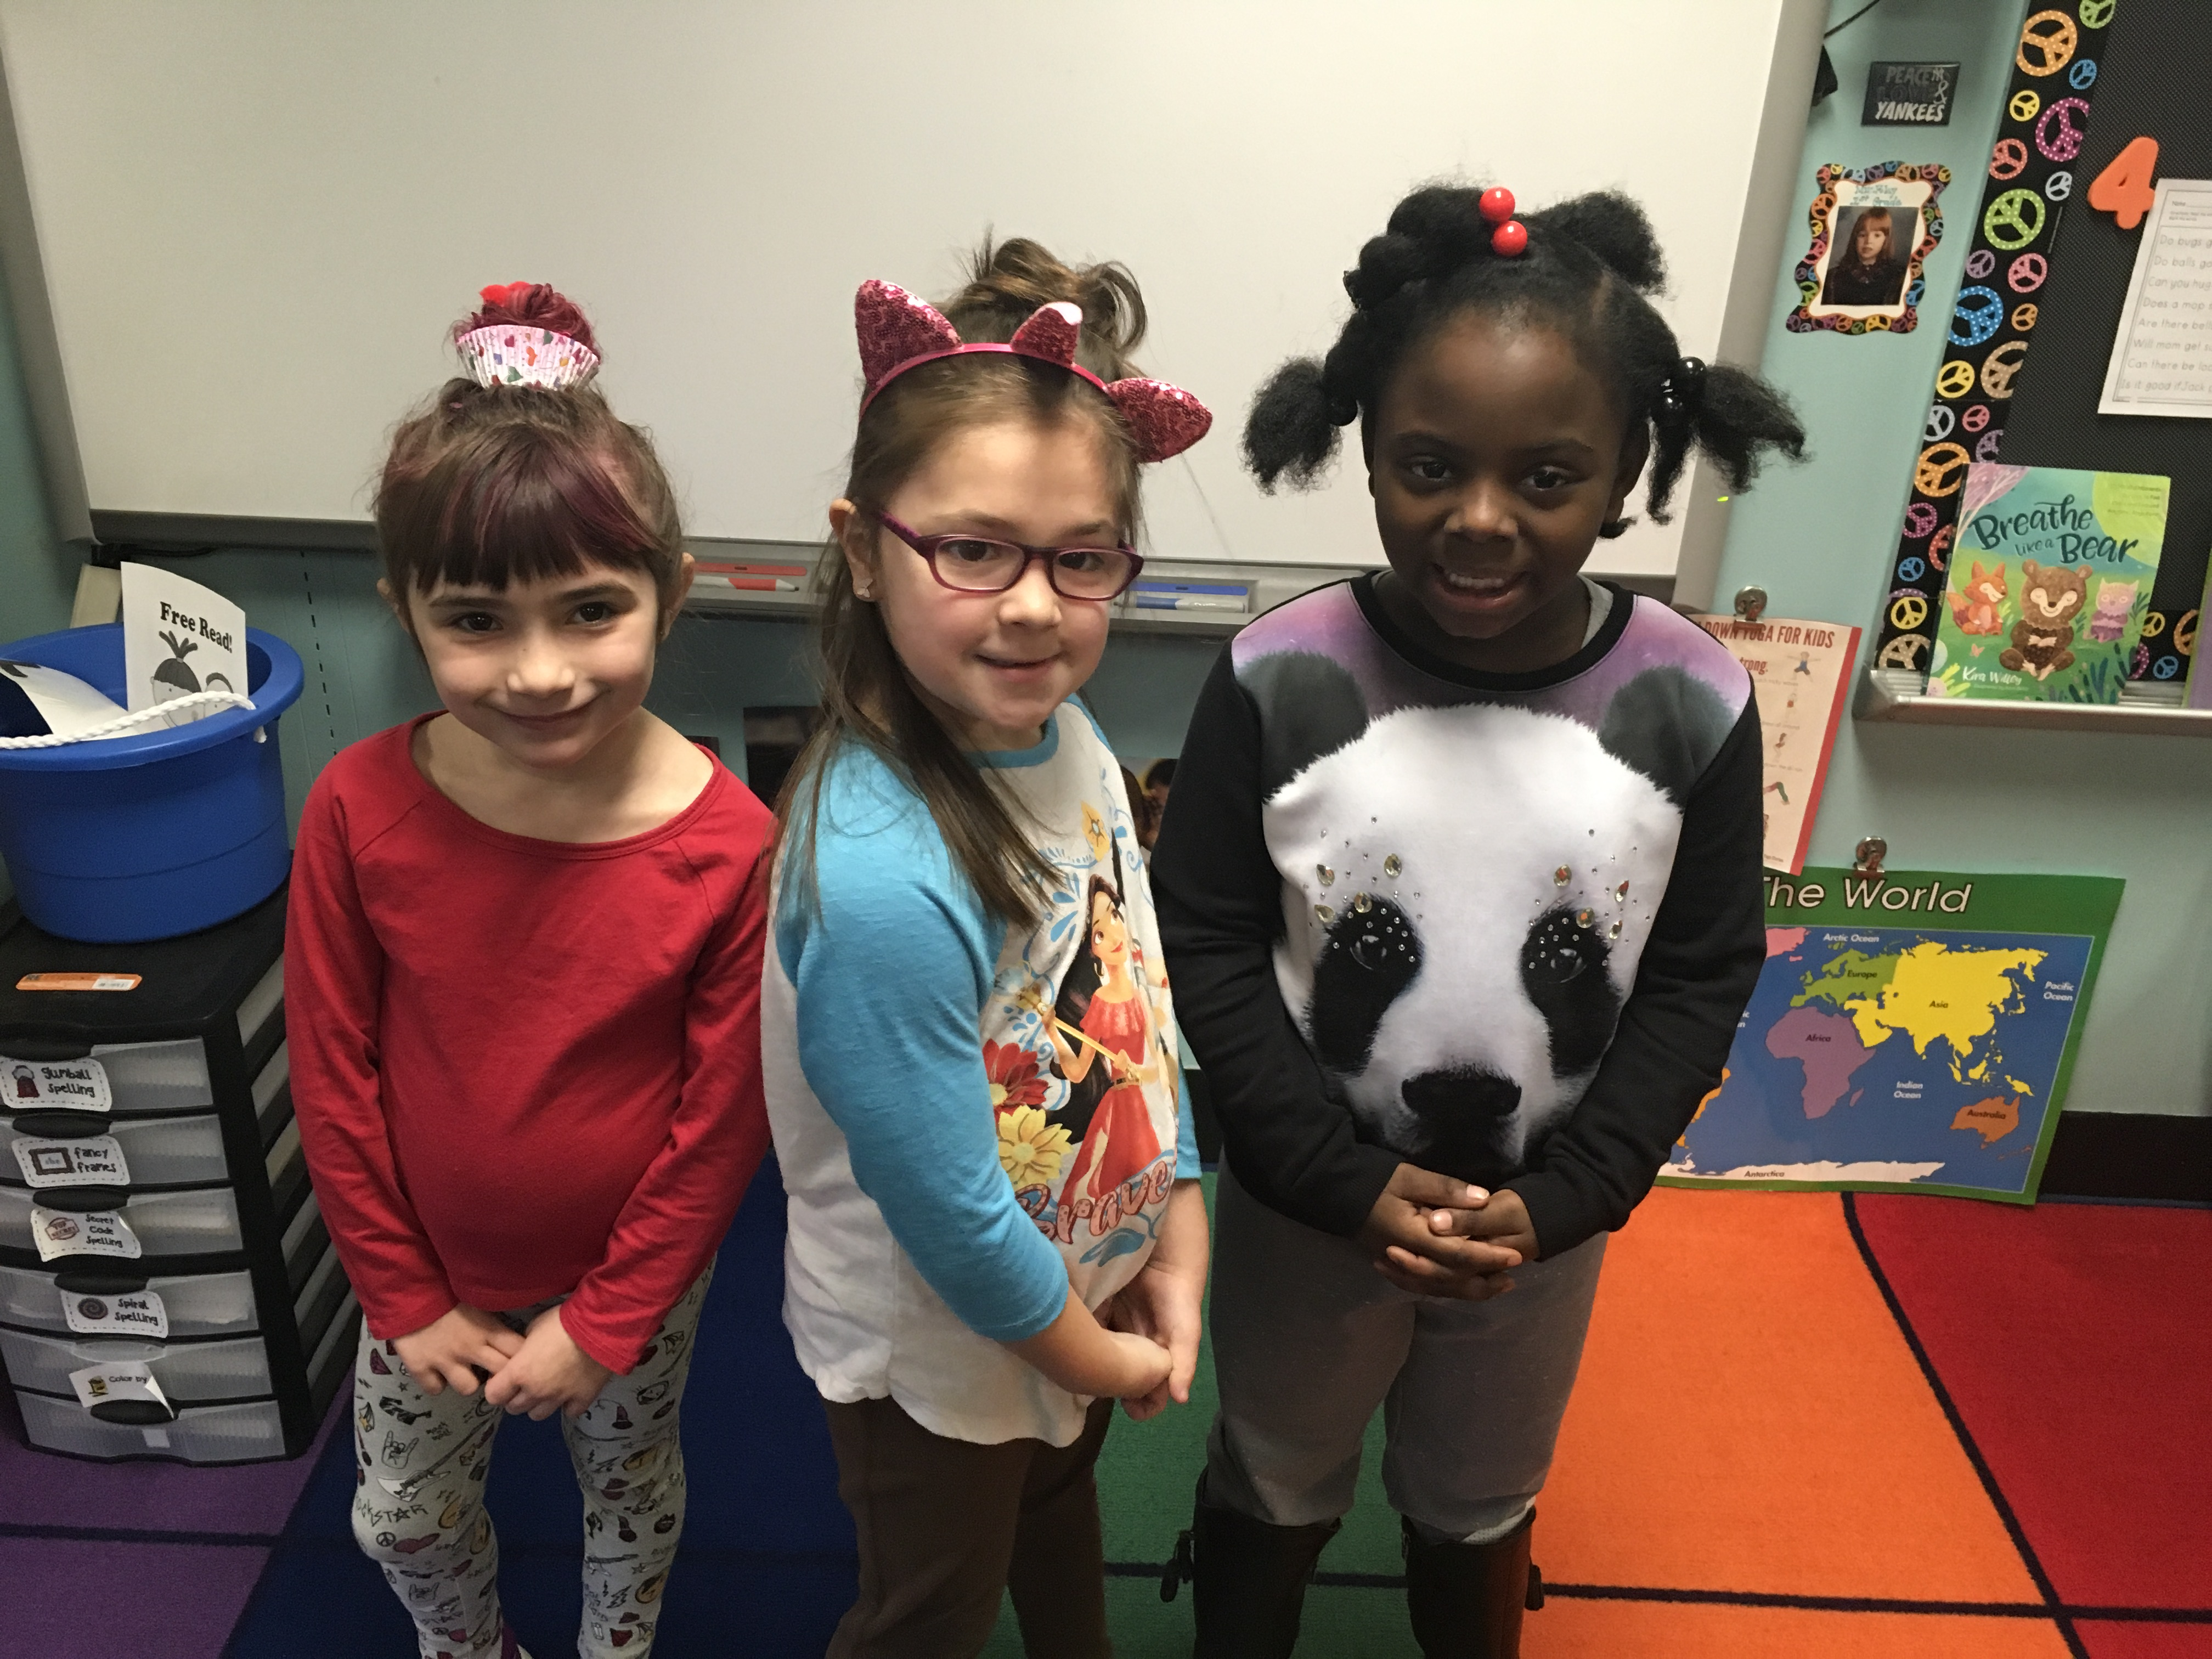 three students show off their wacky hair